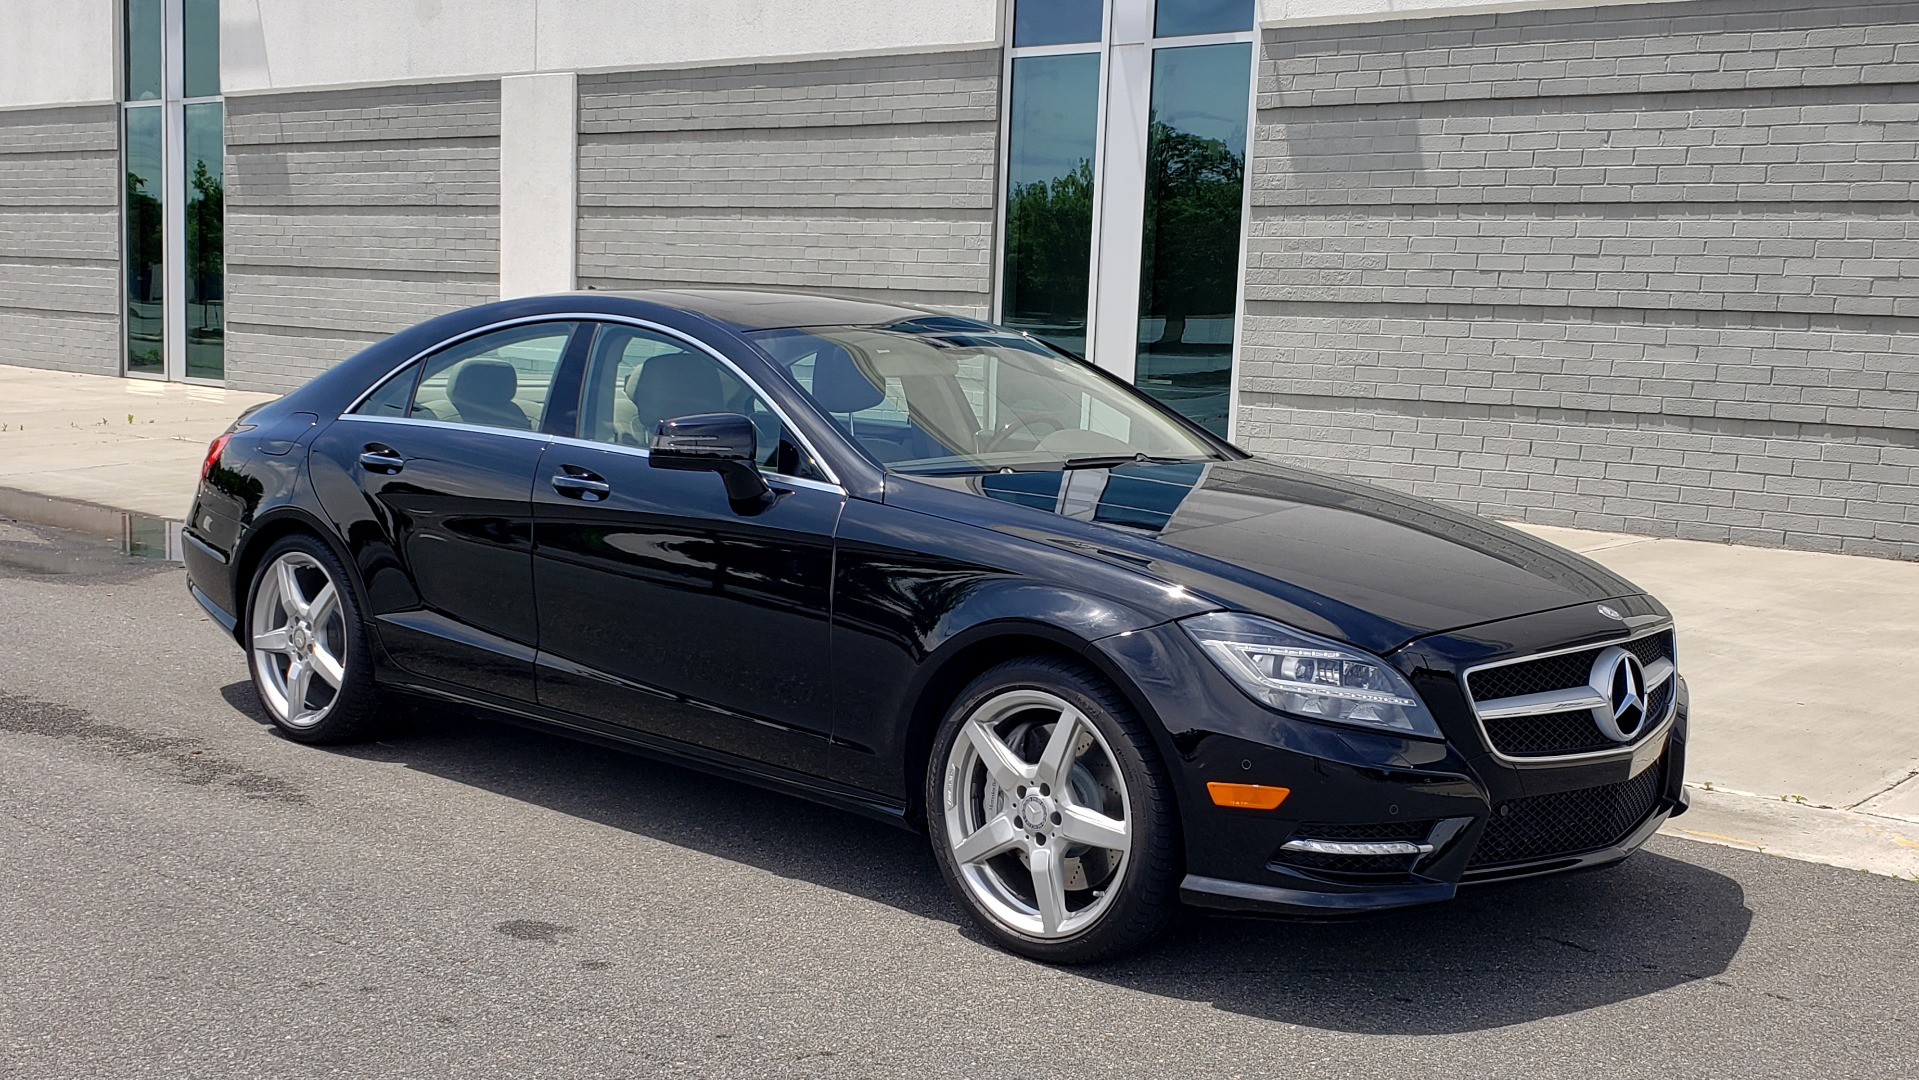 Used 2014 Mercedes-Benz CLS-CLASS CLS 550 PREMIUM / AMG SPORT WHLS / SUNROOF / LANE TRACK / PARKTRONIC for sale Sold at Formula Imports in Charlotte NC 28227 7